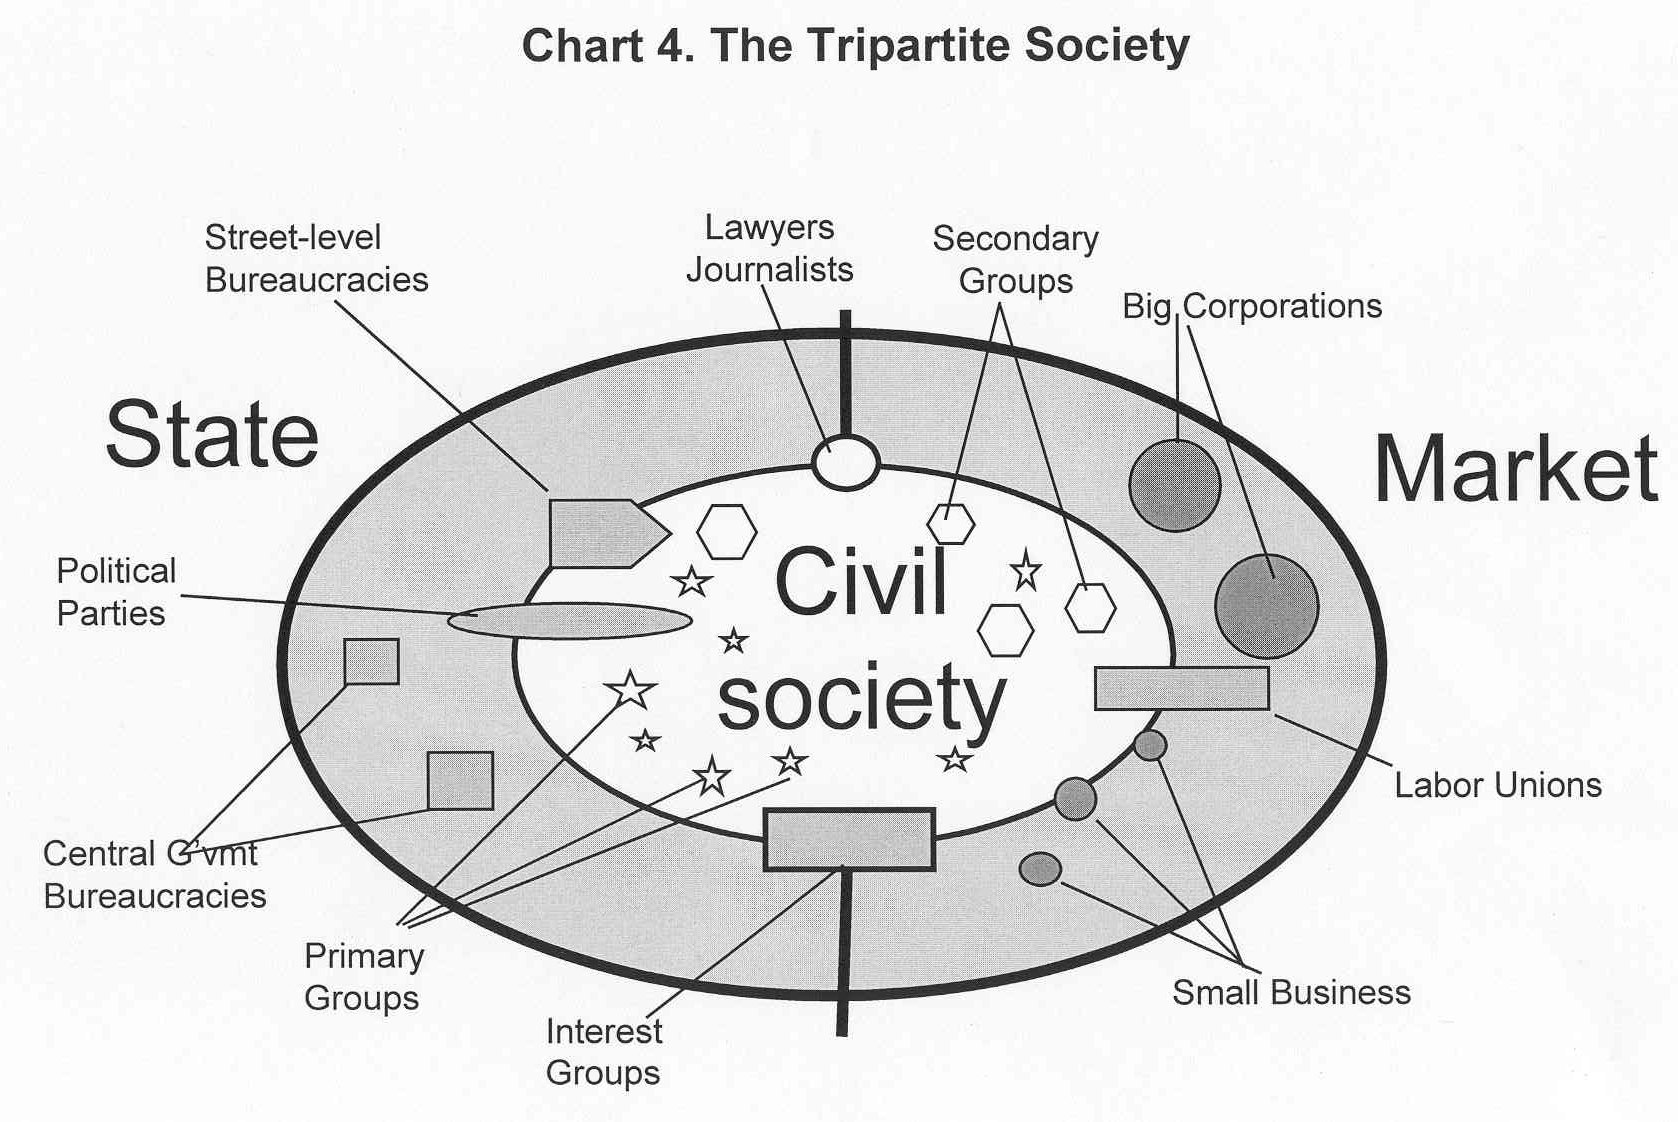 civil society an essay ias our dream it is sometimes considered to include the family and the private sphere and referred to as the third sector of society distinct from government and